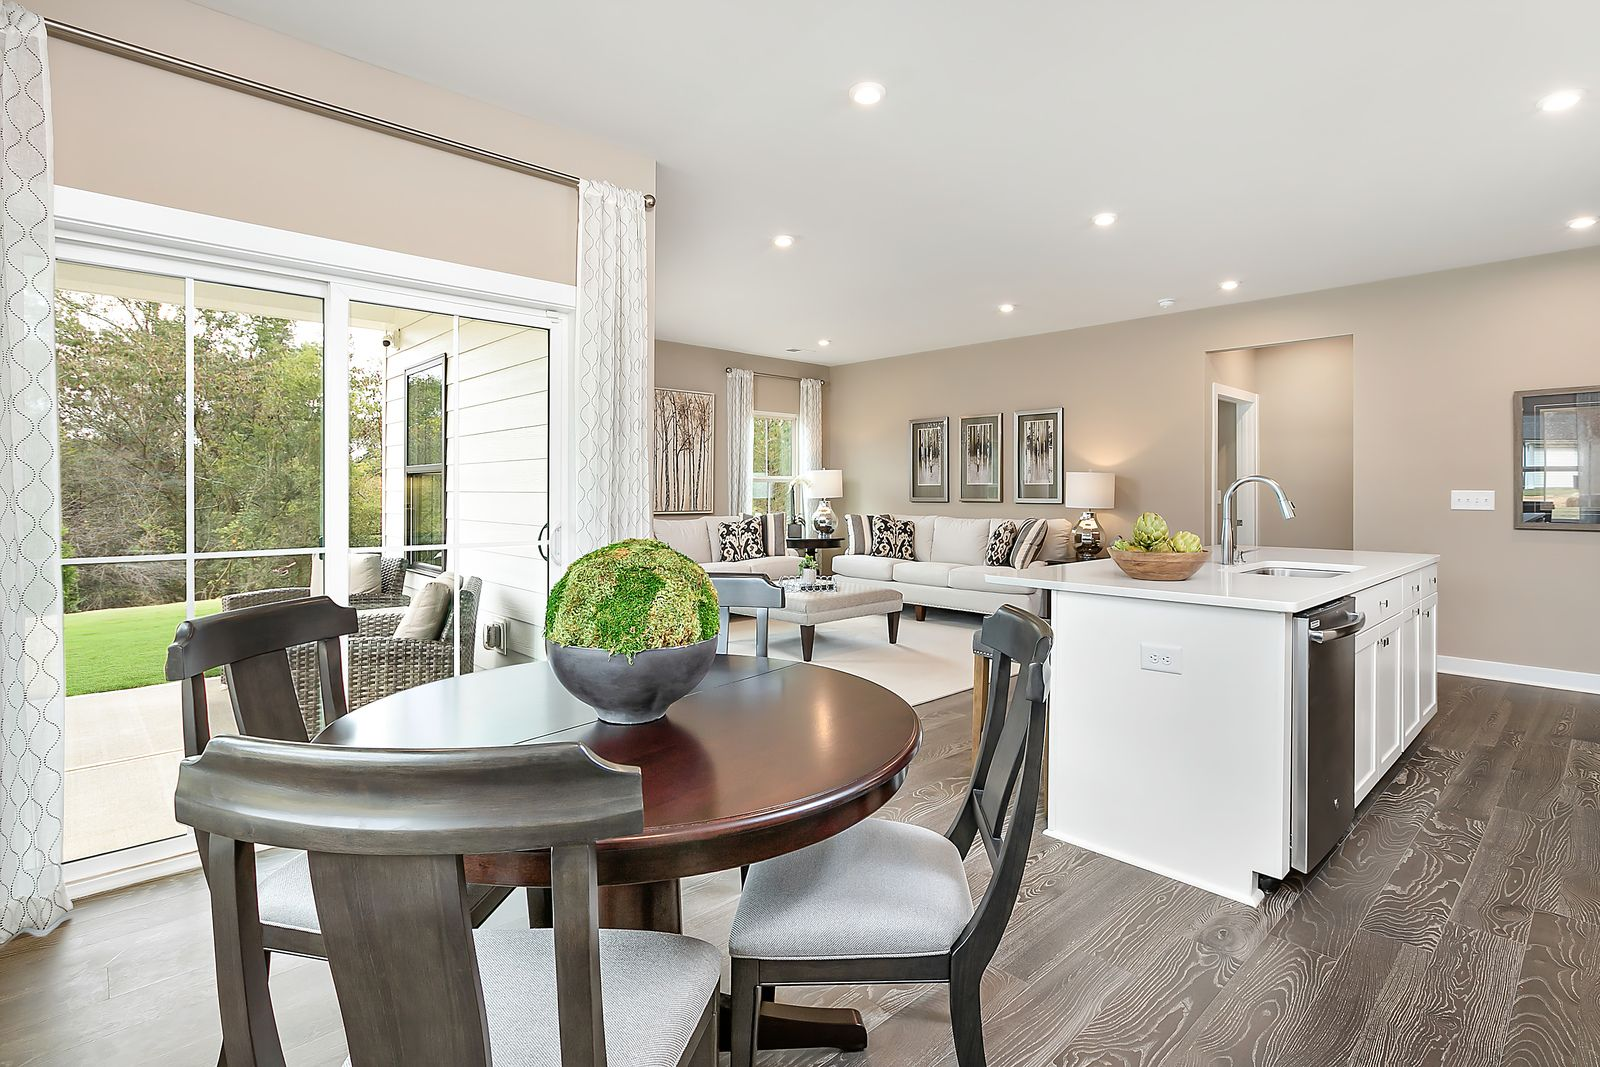 Kitchen featured in the Bramante Ranch By Ryan Homes in Dover, DE